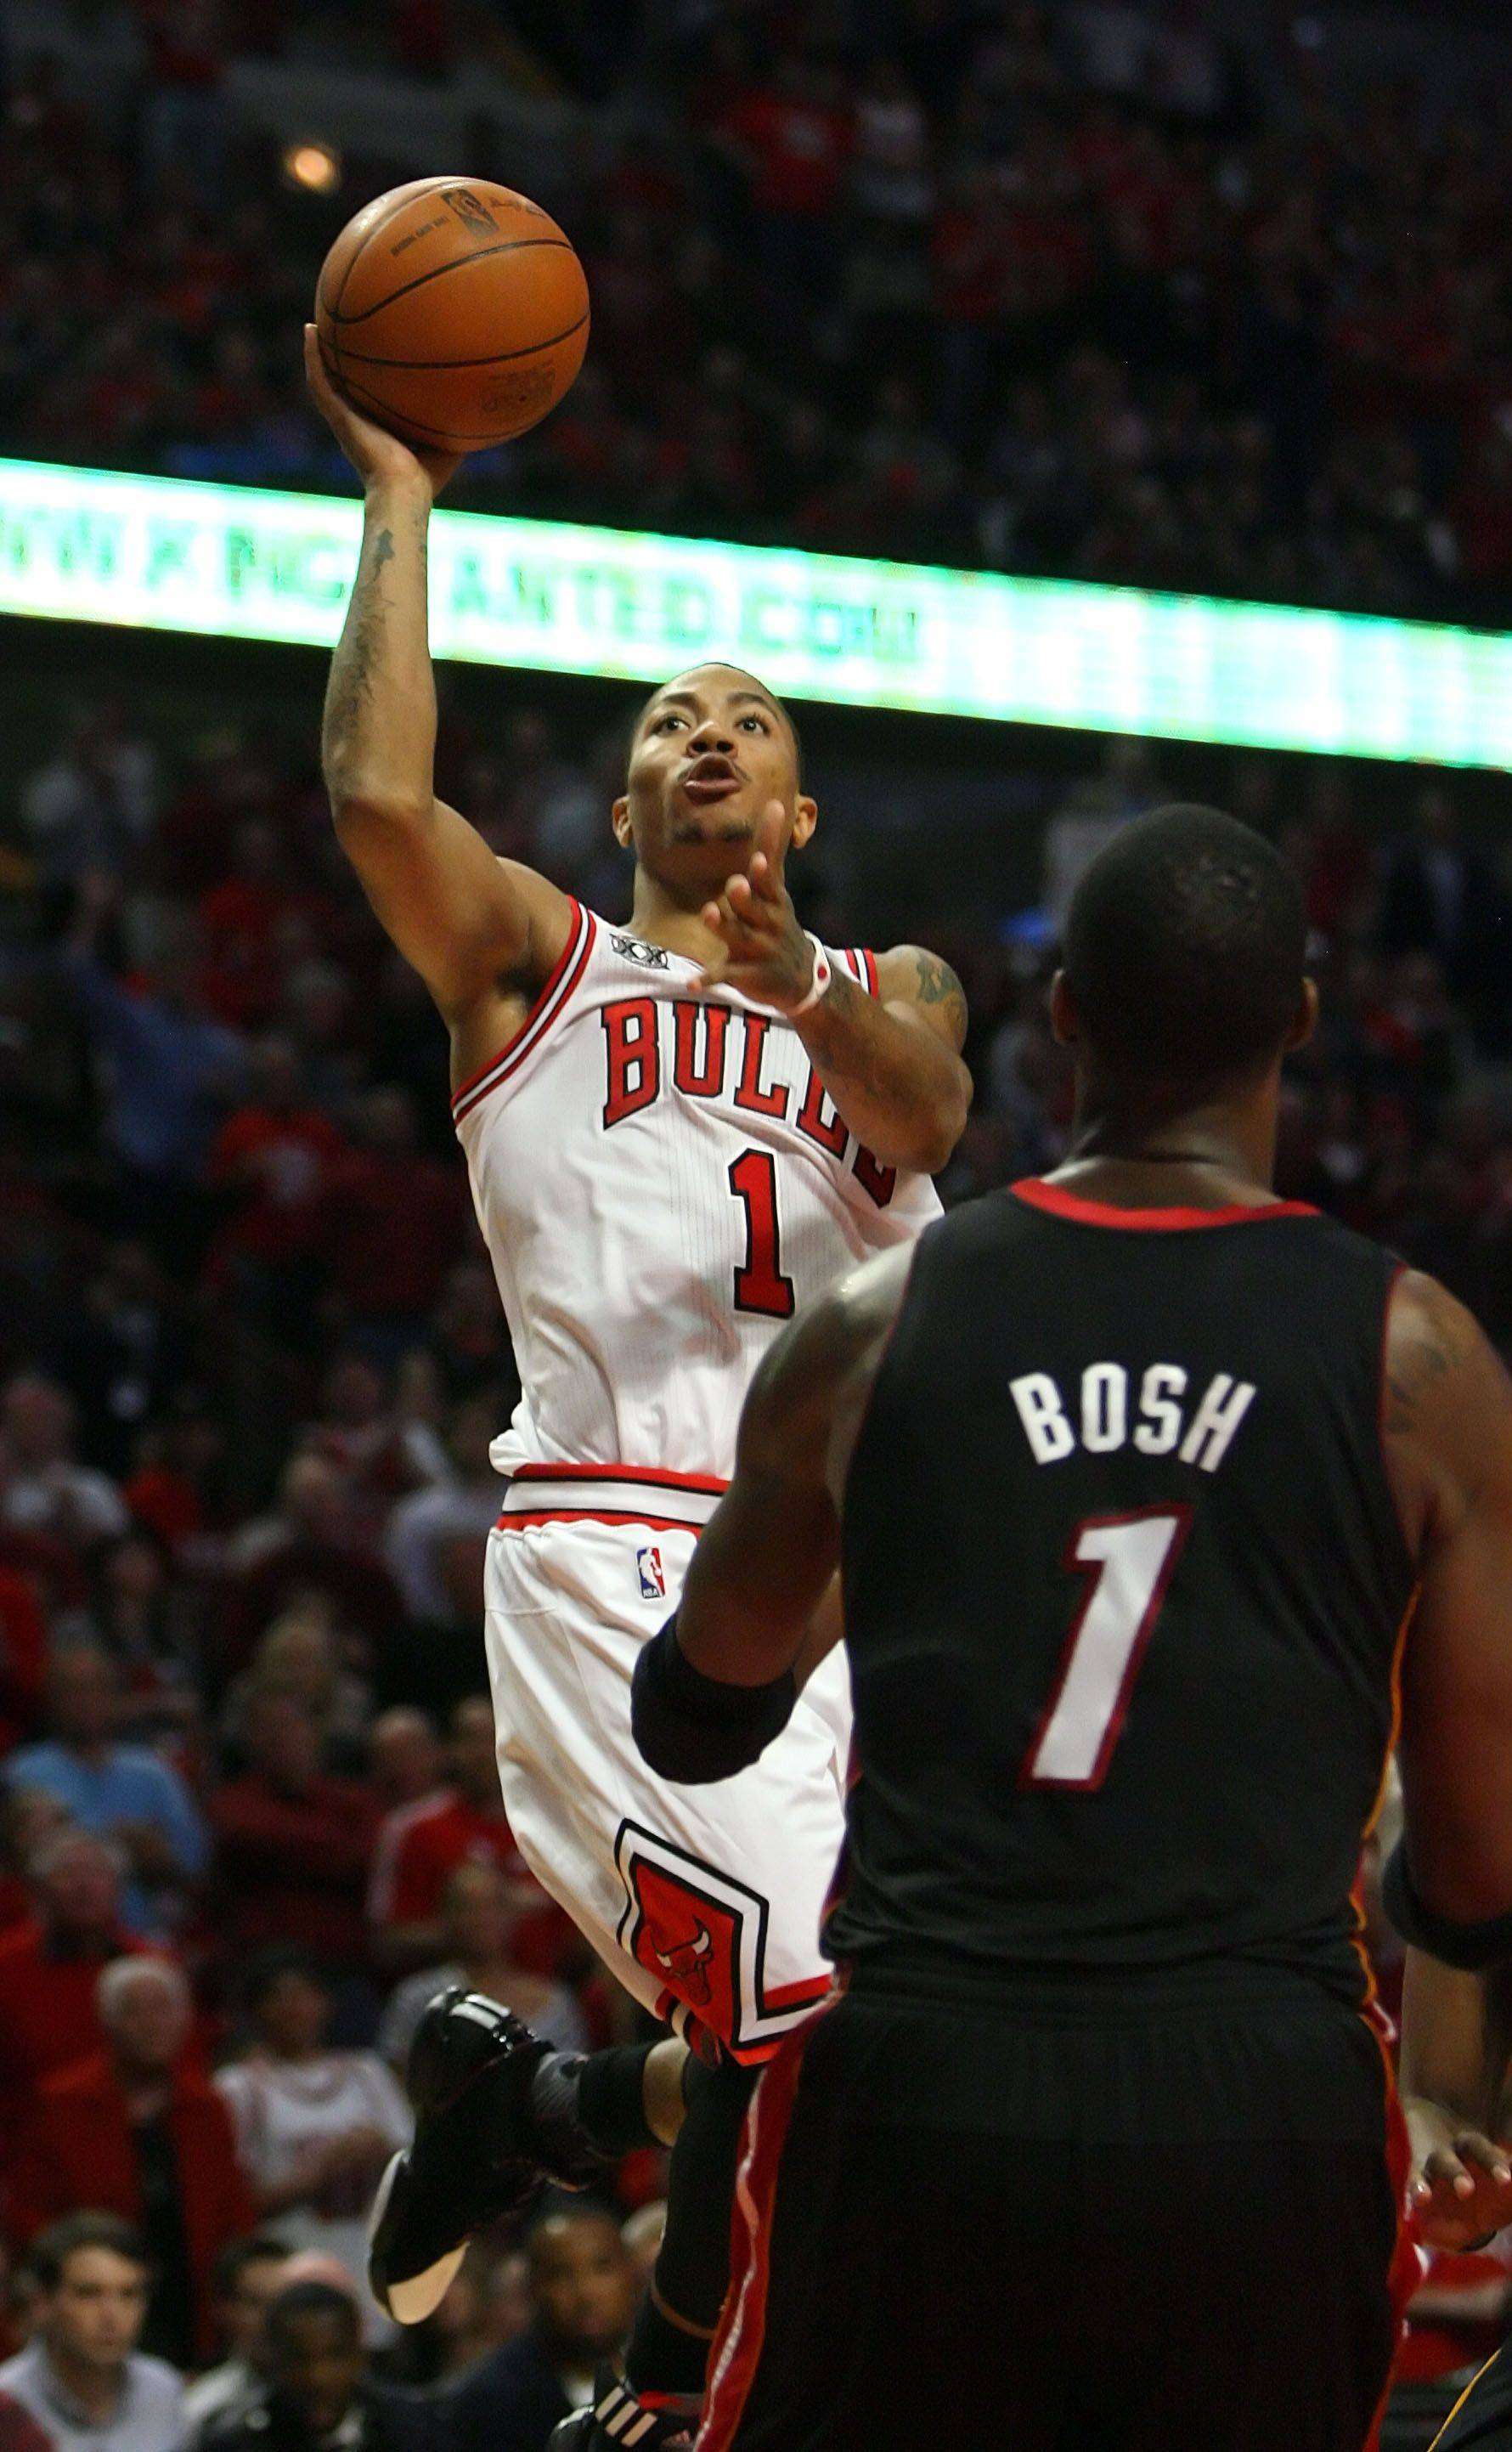 Chicago Bulls point guard Derrick Rose drives on Miami Heat power forward Chris Bosh during game one.